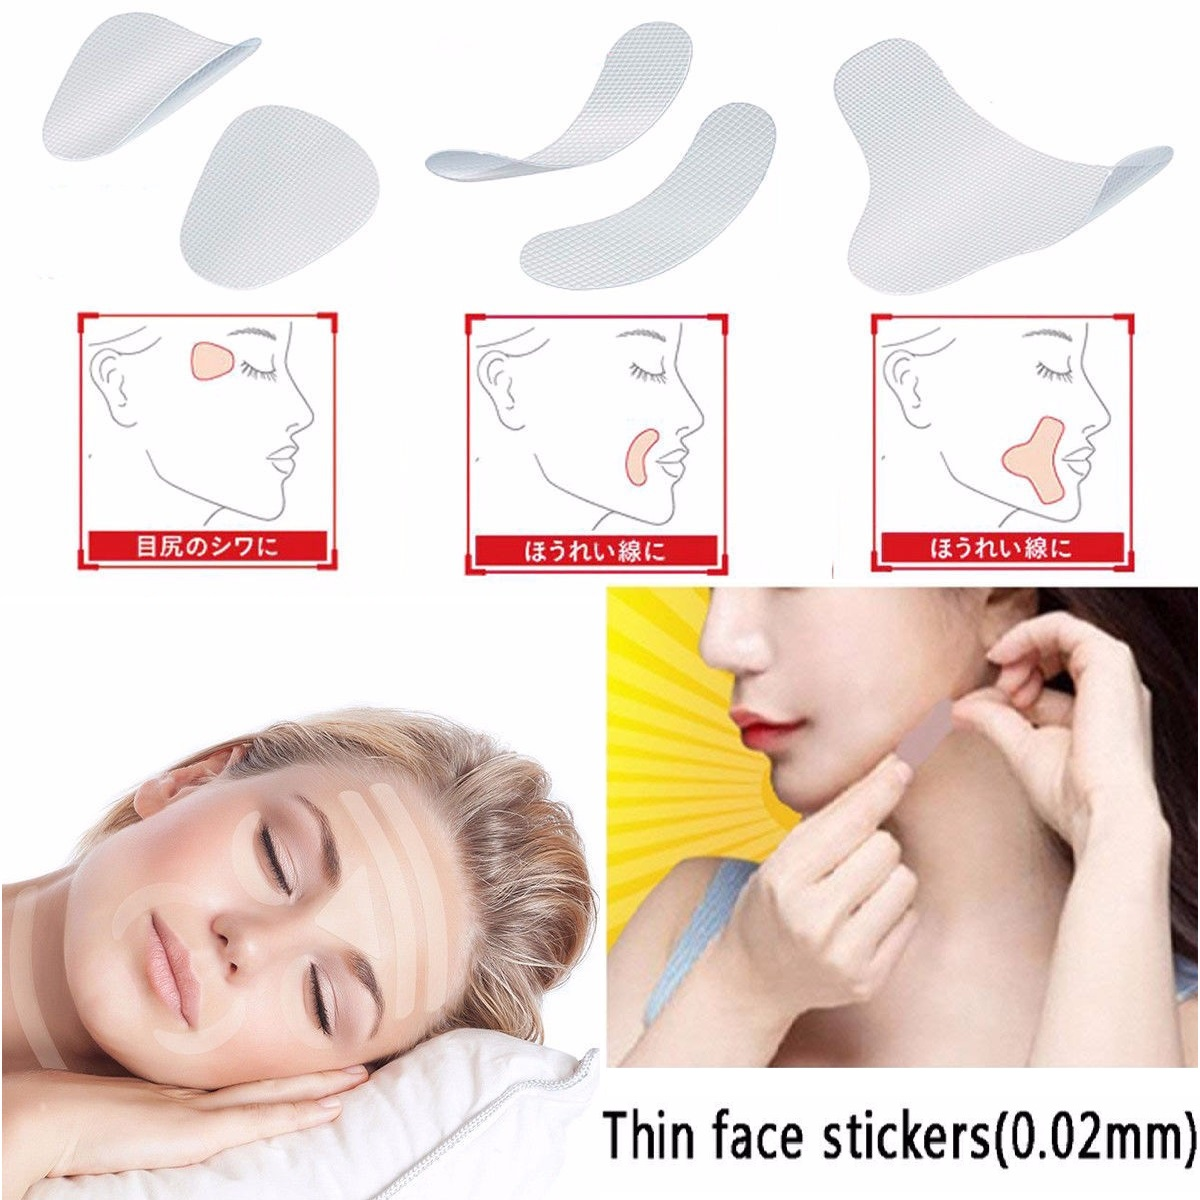 Misscheering Drop Ship 40/27/24/12pcs V-Shape Thin Face Artifact Invisible Sticker